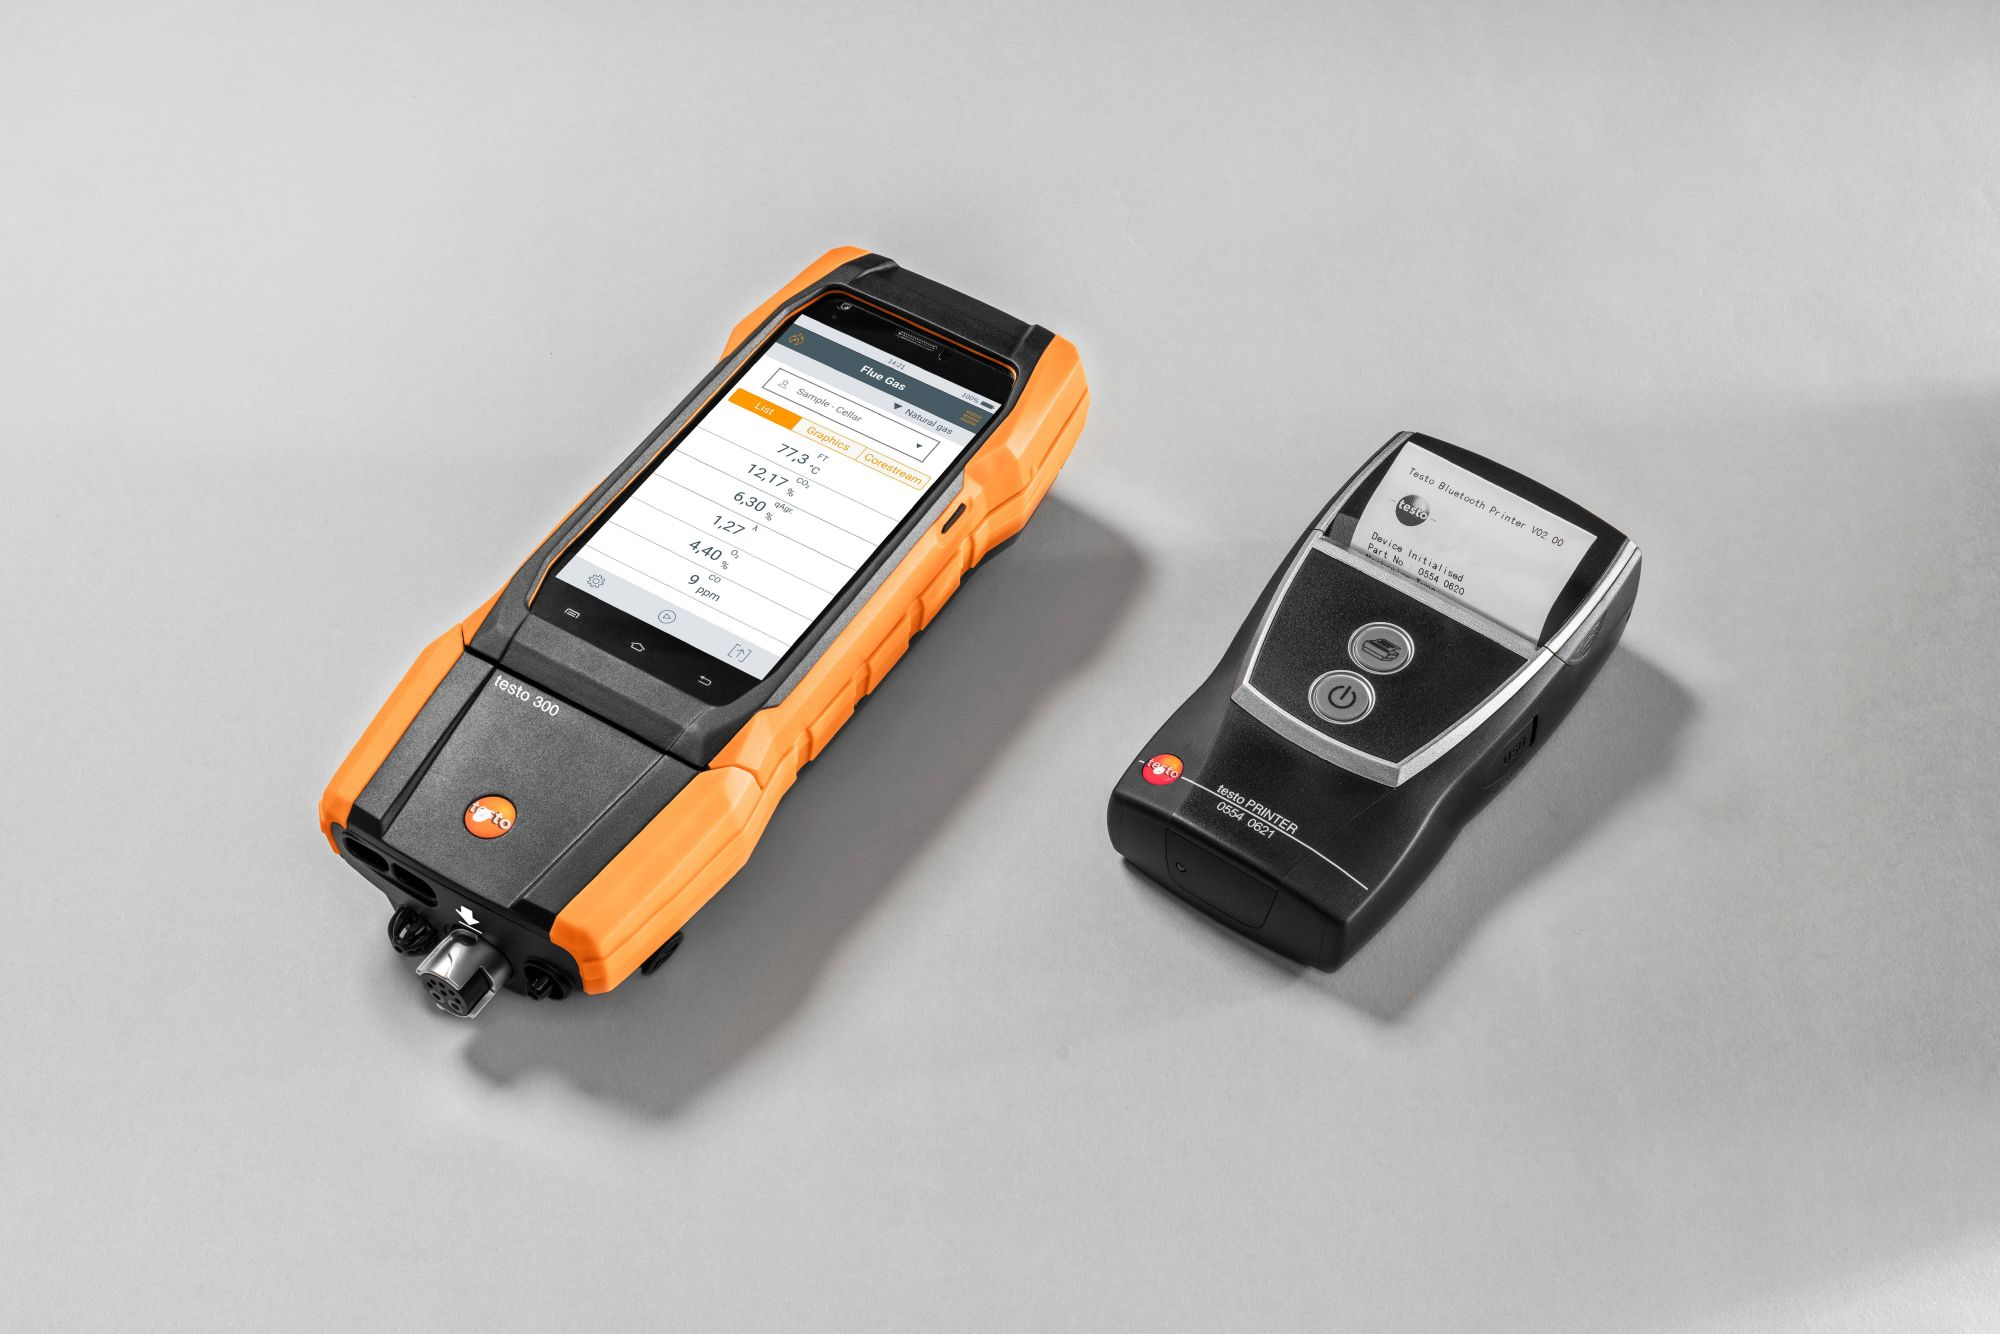 testo-300-detail-with-printer-en.jpg